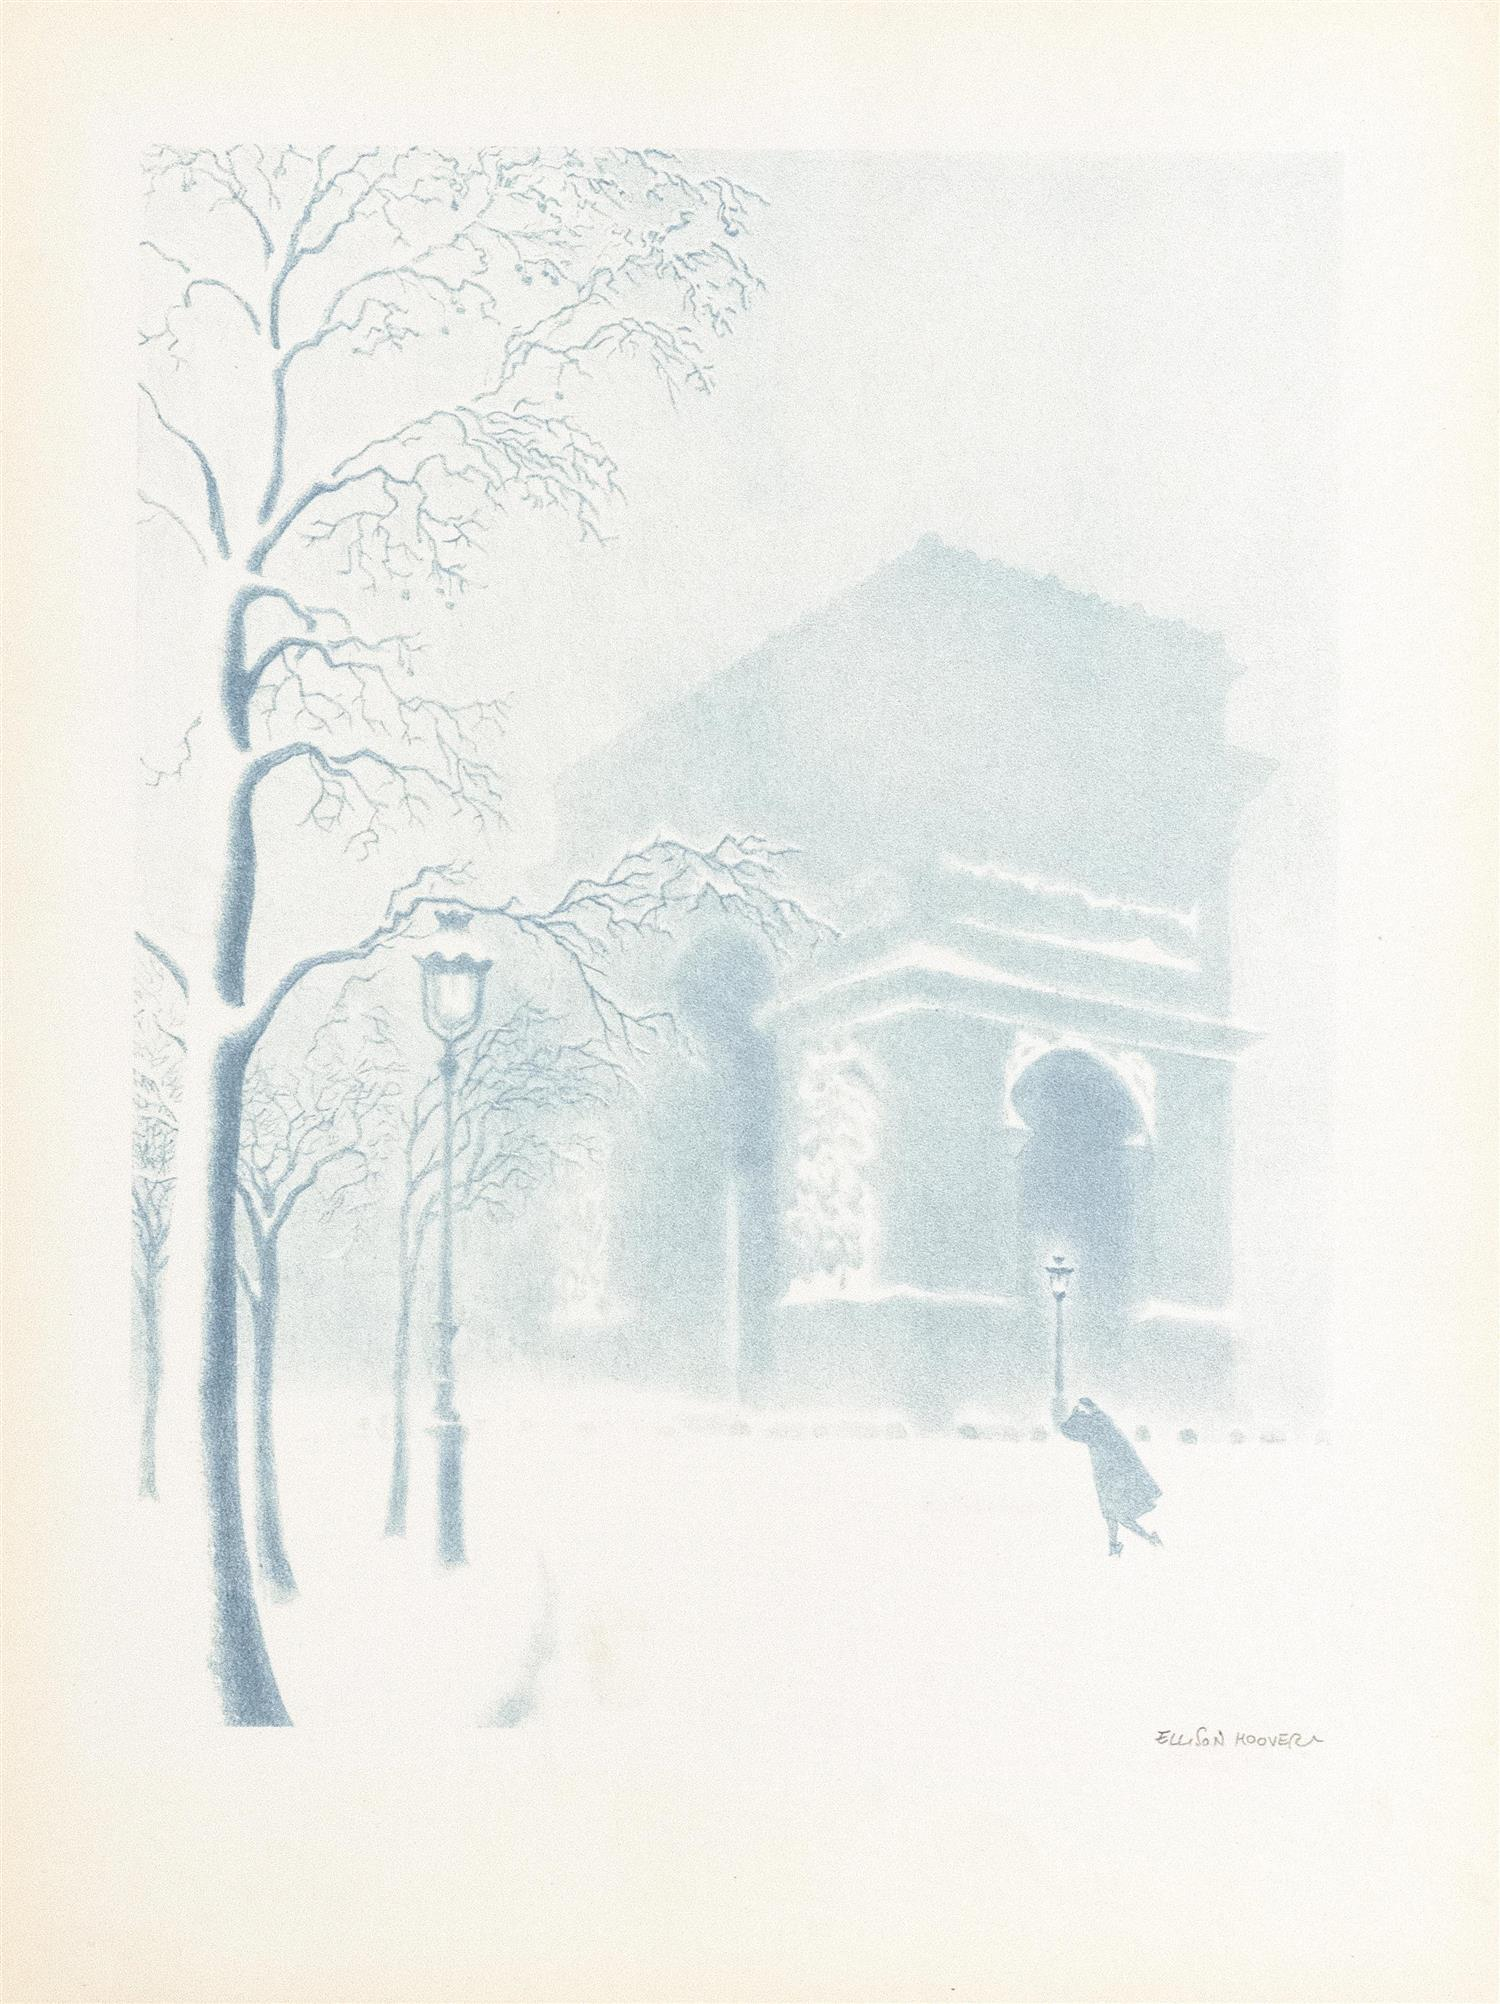 "ELLISON HOOVER, Ohio/New York, 1888-1955, The Arc de Triomphe in snow., Lithograph printed in blue, sheet size 16"" x 12"". Unframed."